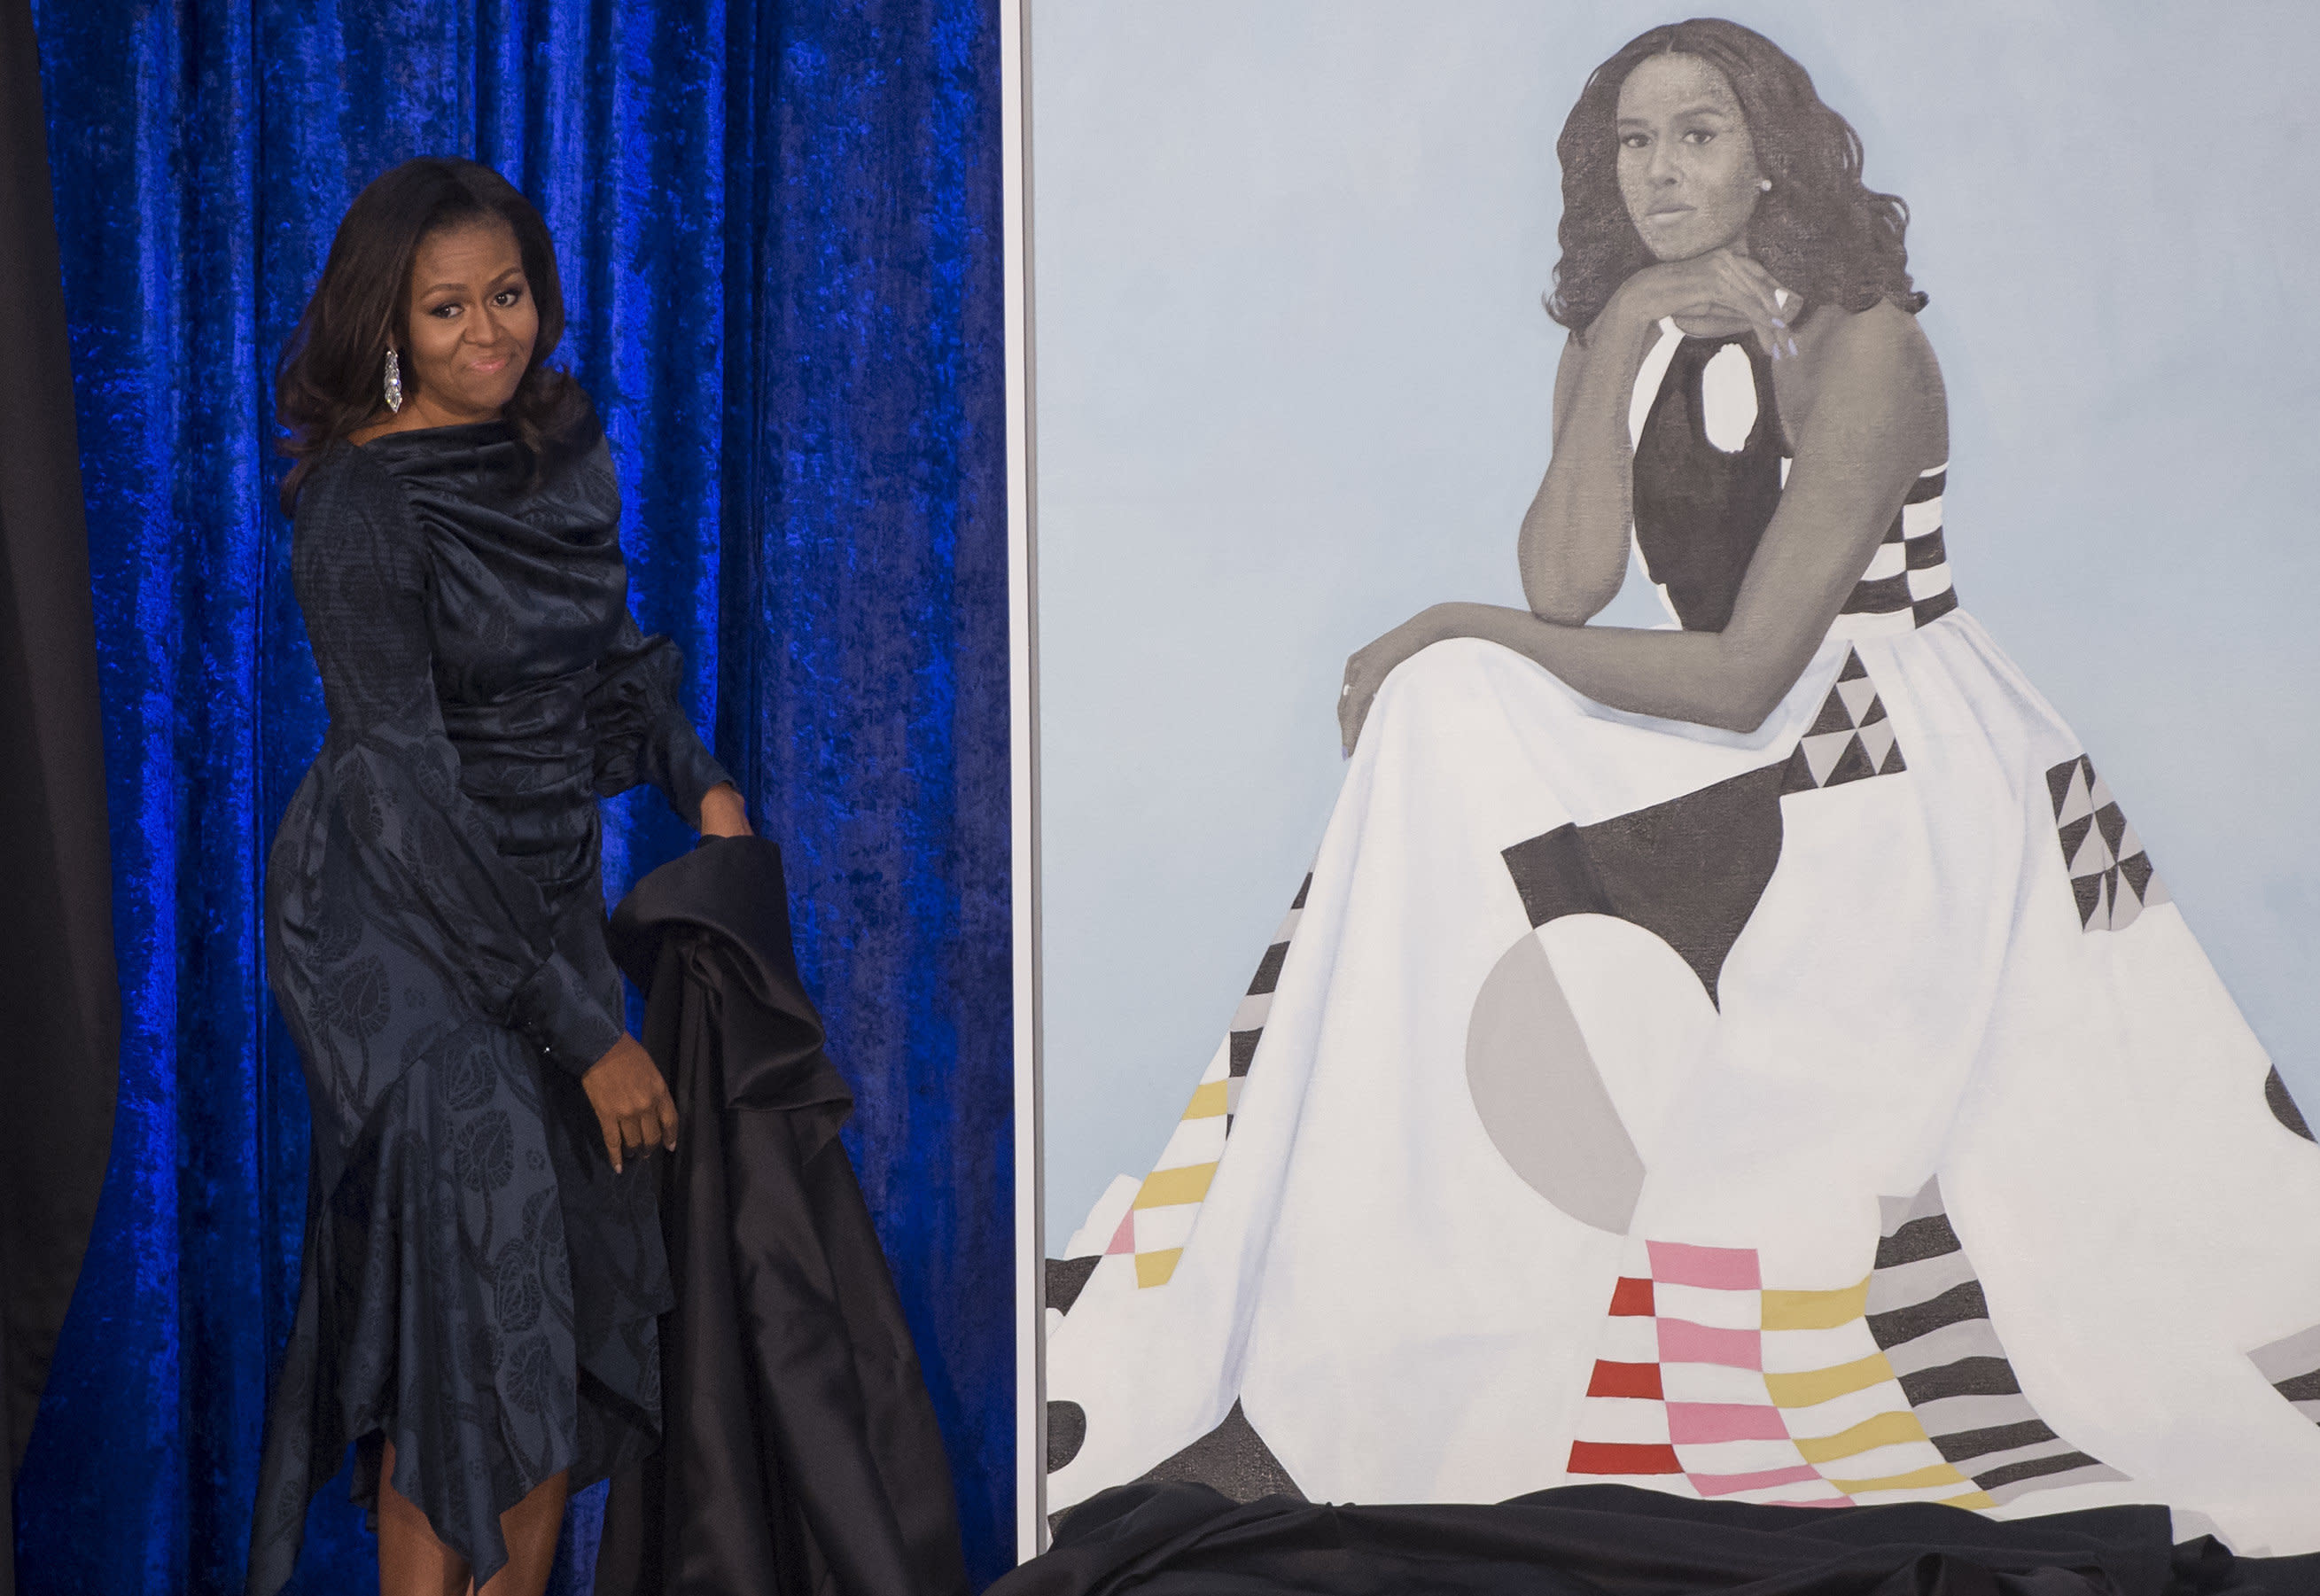 Former first lady Michelle Obama's portrait that will be on display in the National Portrait Gallery. (Saul Loeb/AFP/Getty Images)